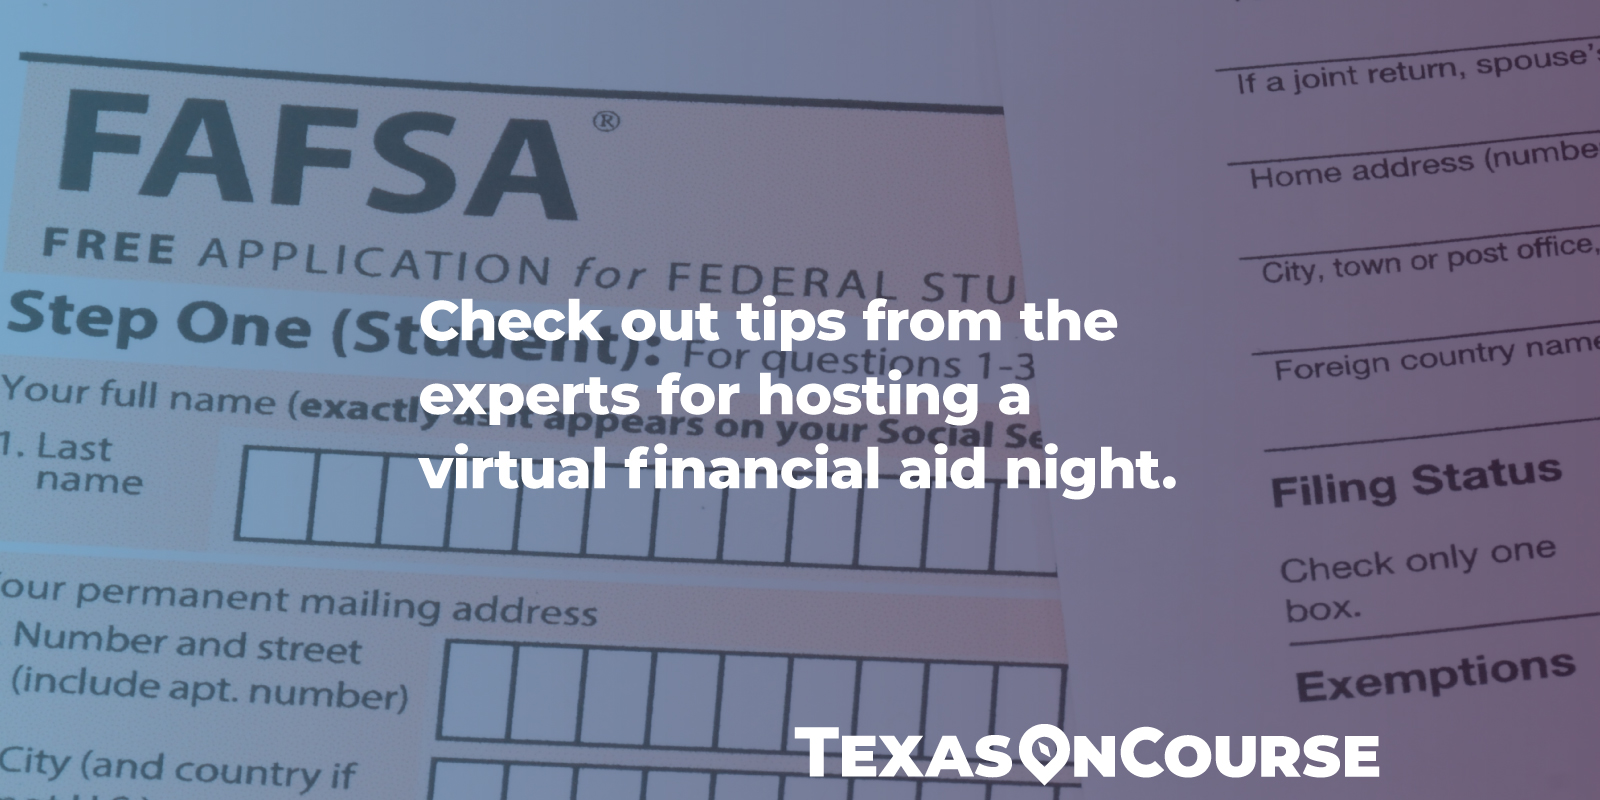 Check out tips from the experts for hosting a virtual financial aid night.